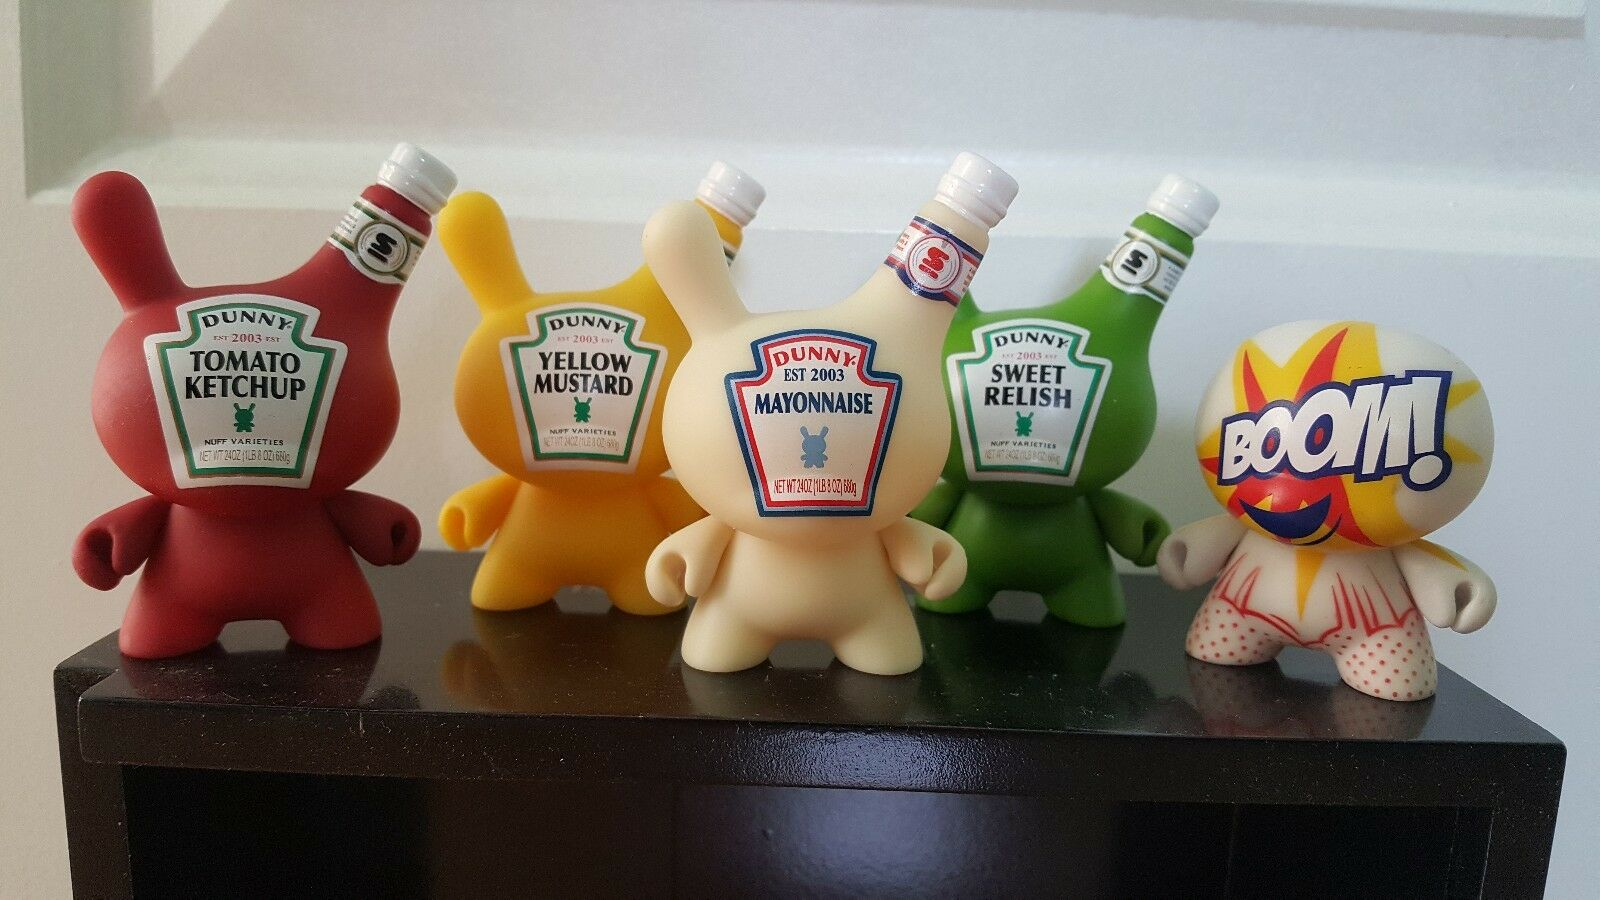 Dunny 2010 - Sket One Condiment Condiment Condiment 3  AP SET - Ketchup, Relish, Mustard, Mayo, Pop a6909c